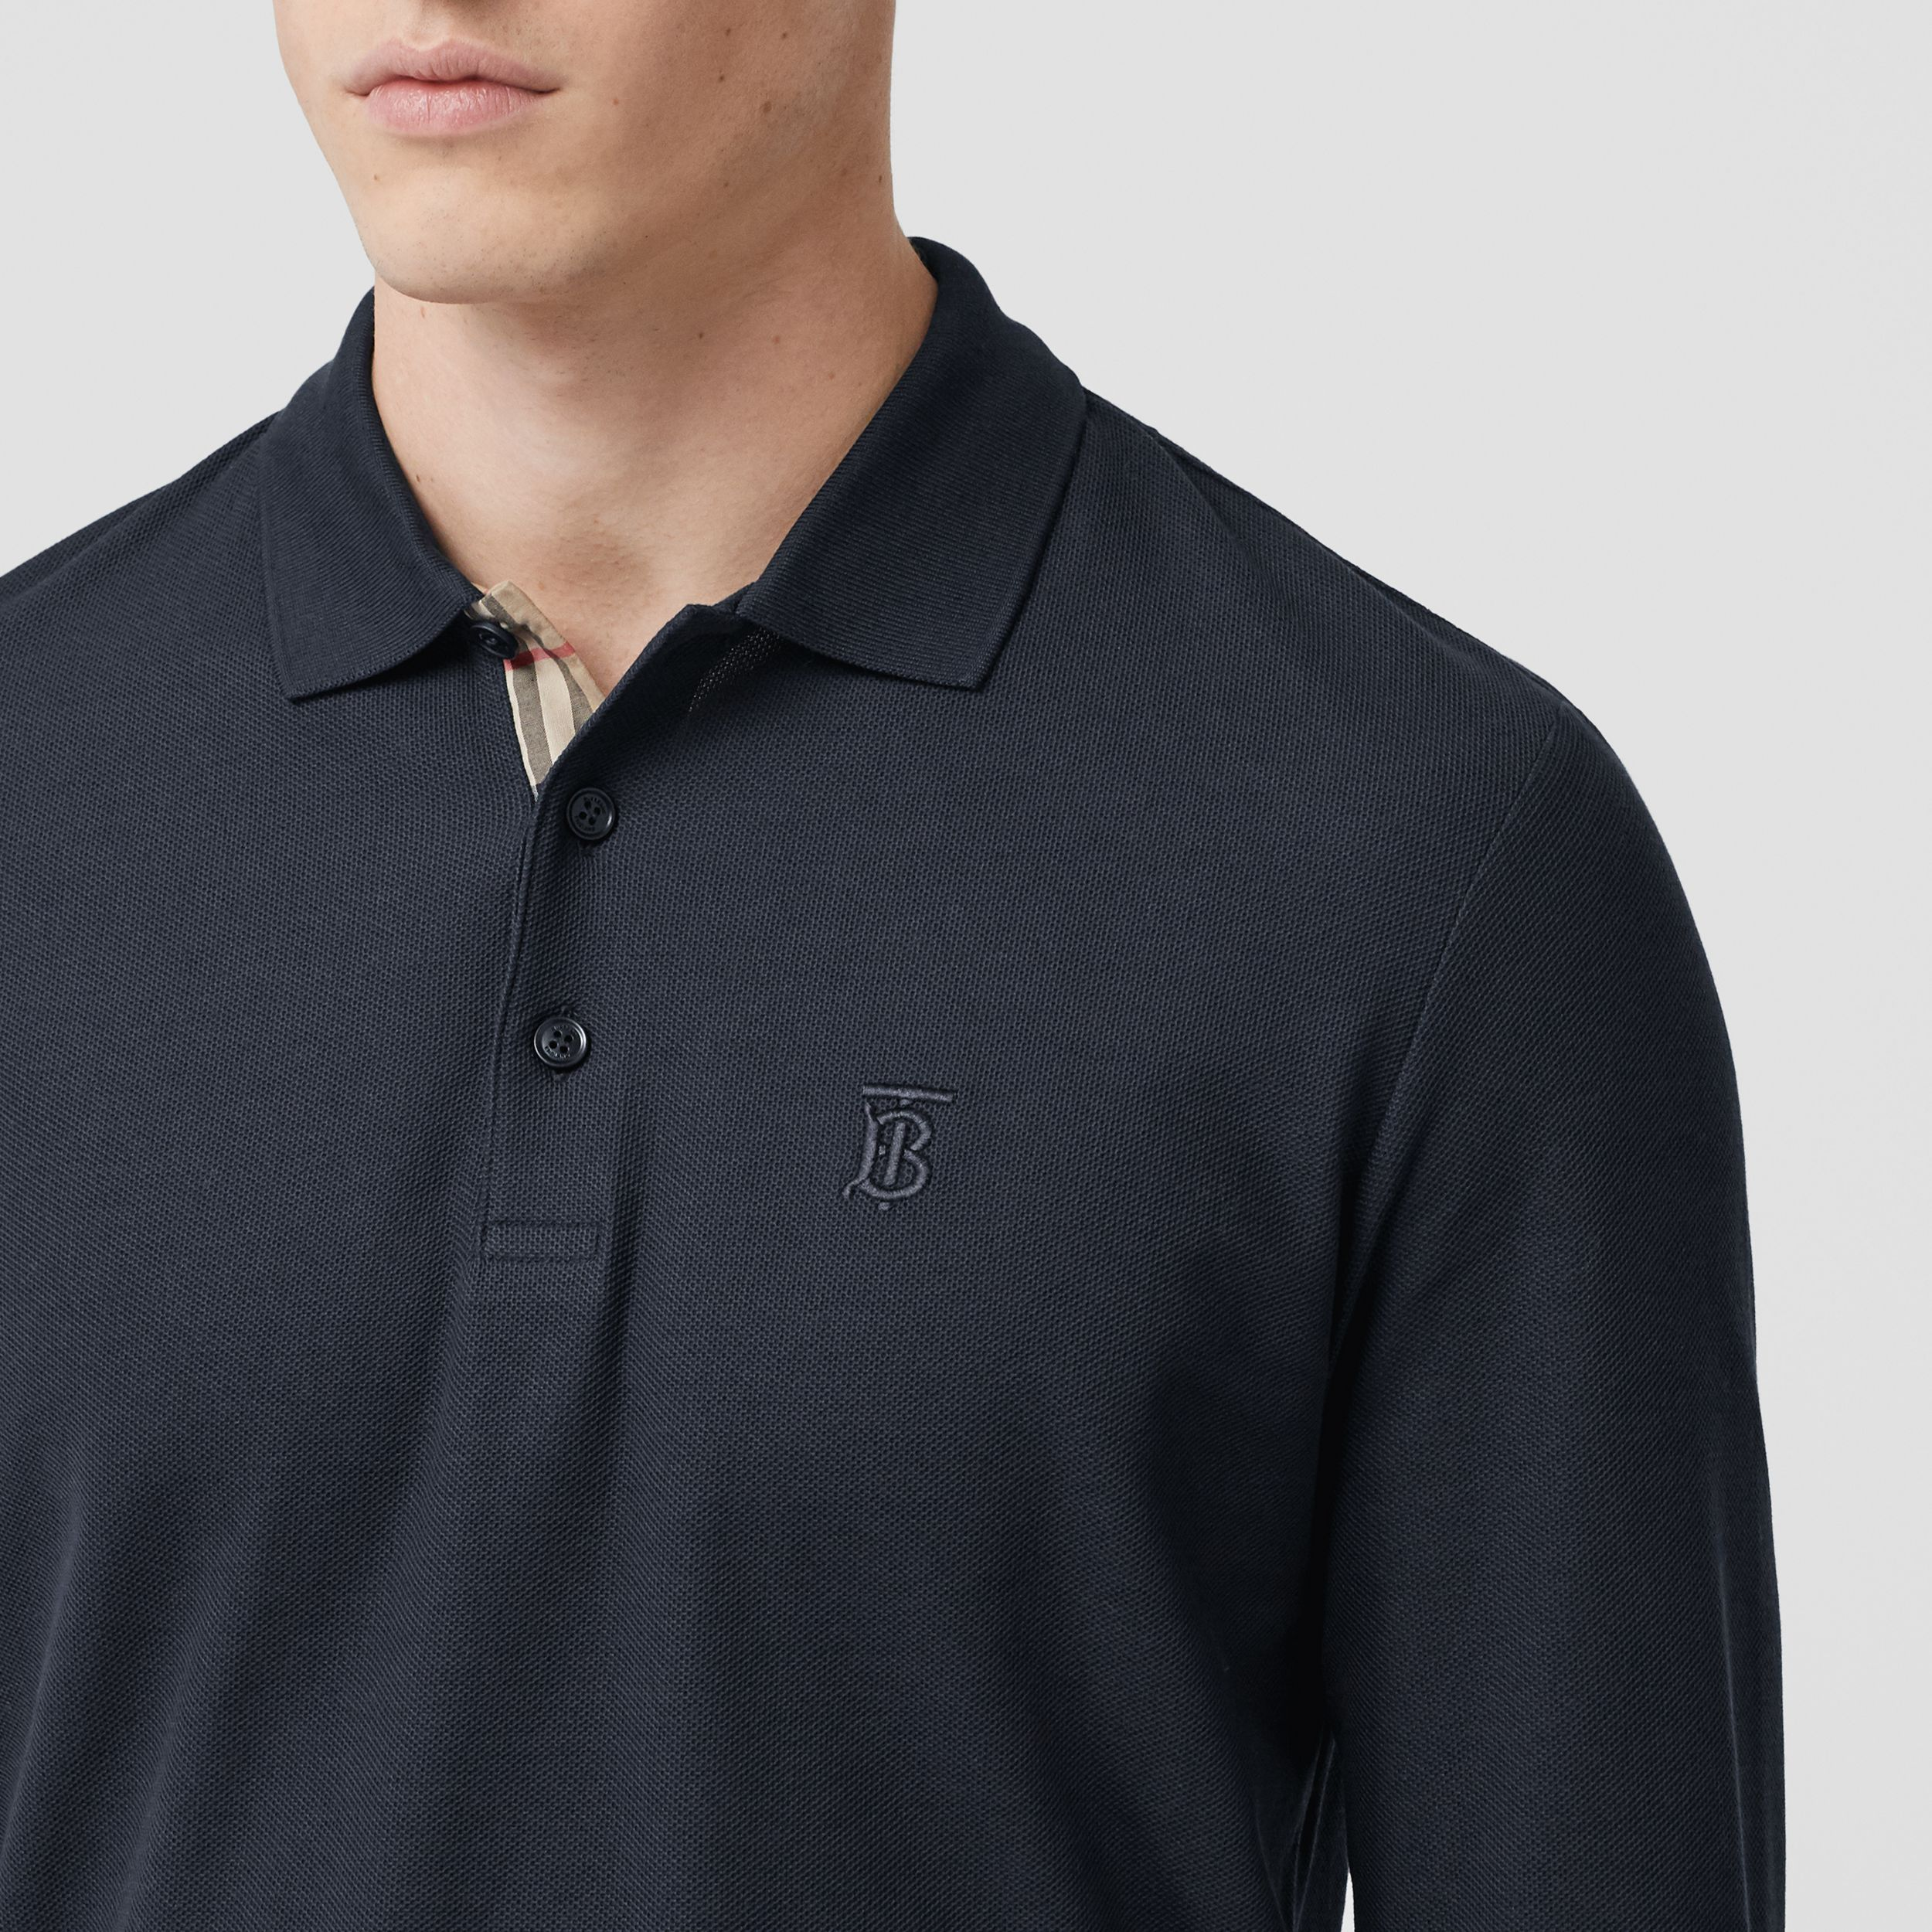 Long-sleeve Monogram Motif Cotton Piqué Polo Shirt in Navy - Men | Burberry Australia - 2